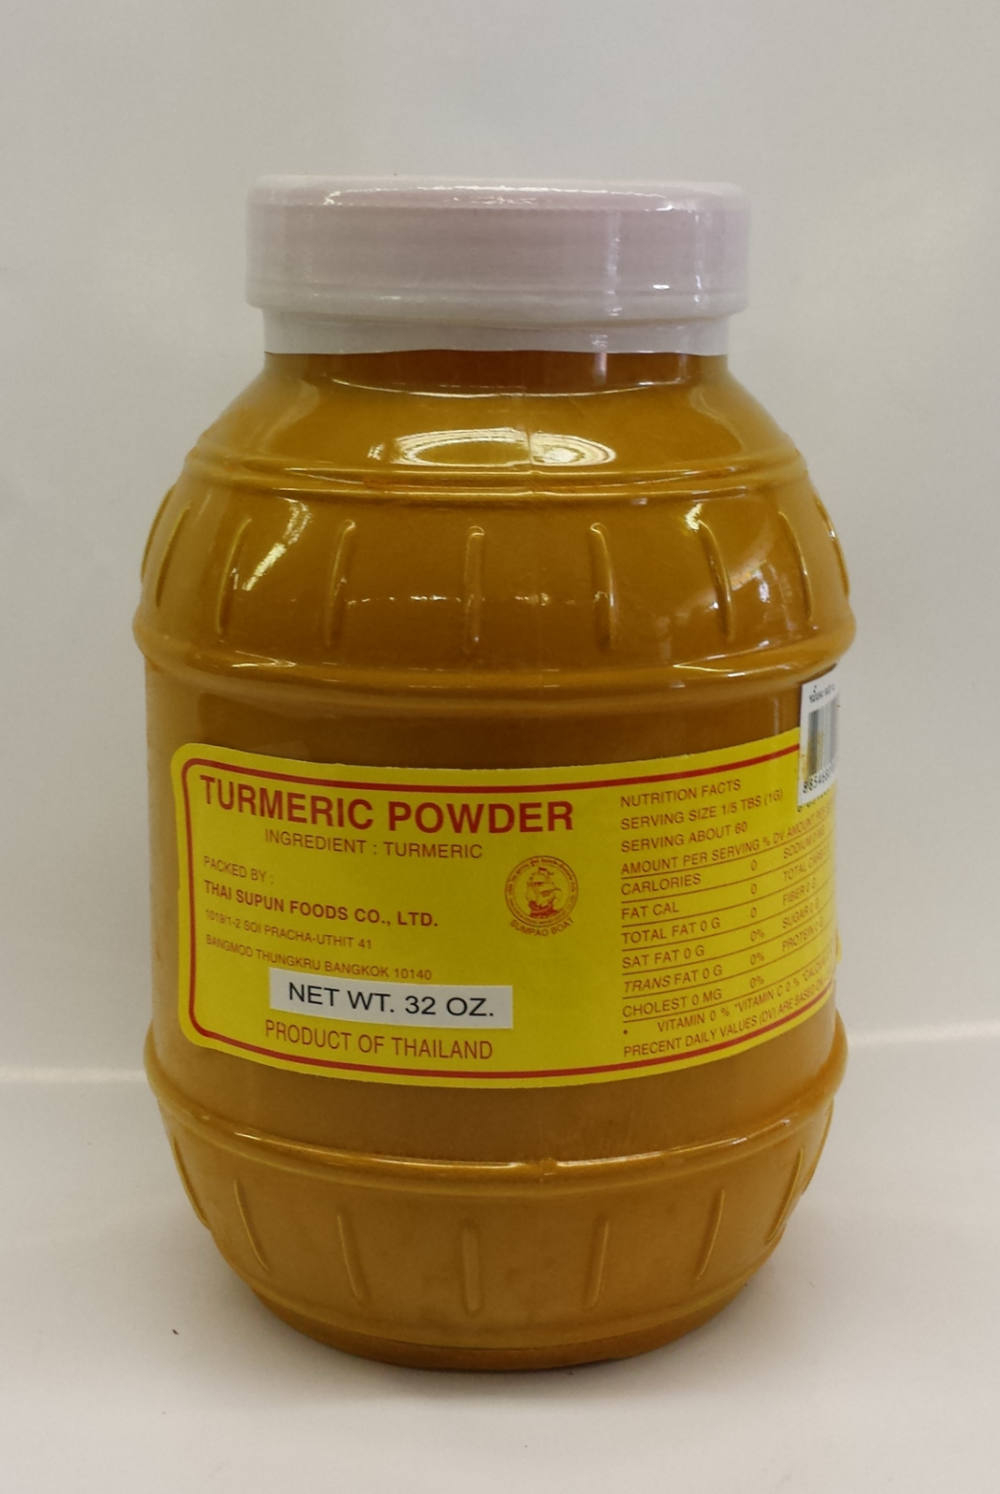 Turmeric Powder   Sumpao Boat   PD17204 6x32 oz